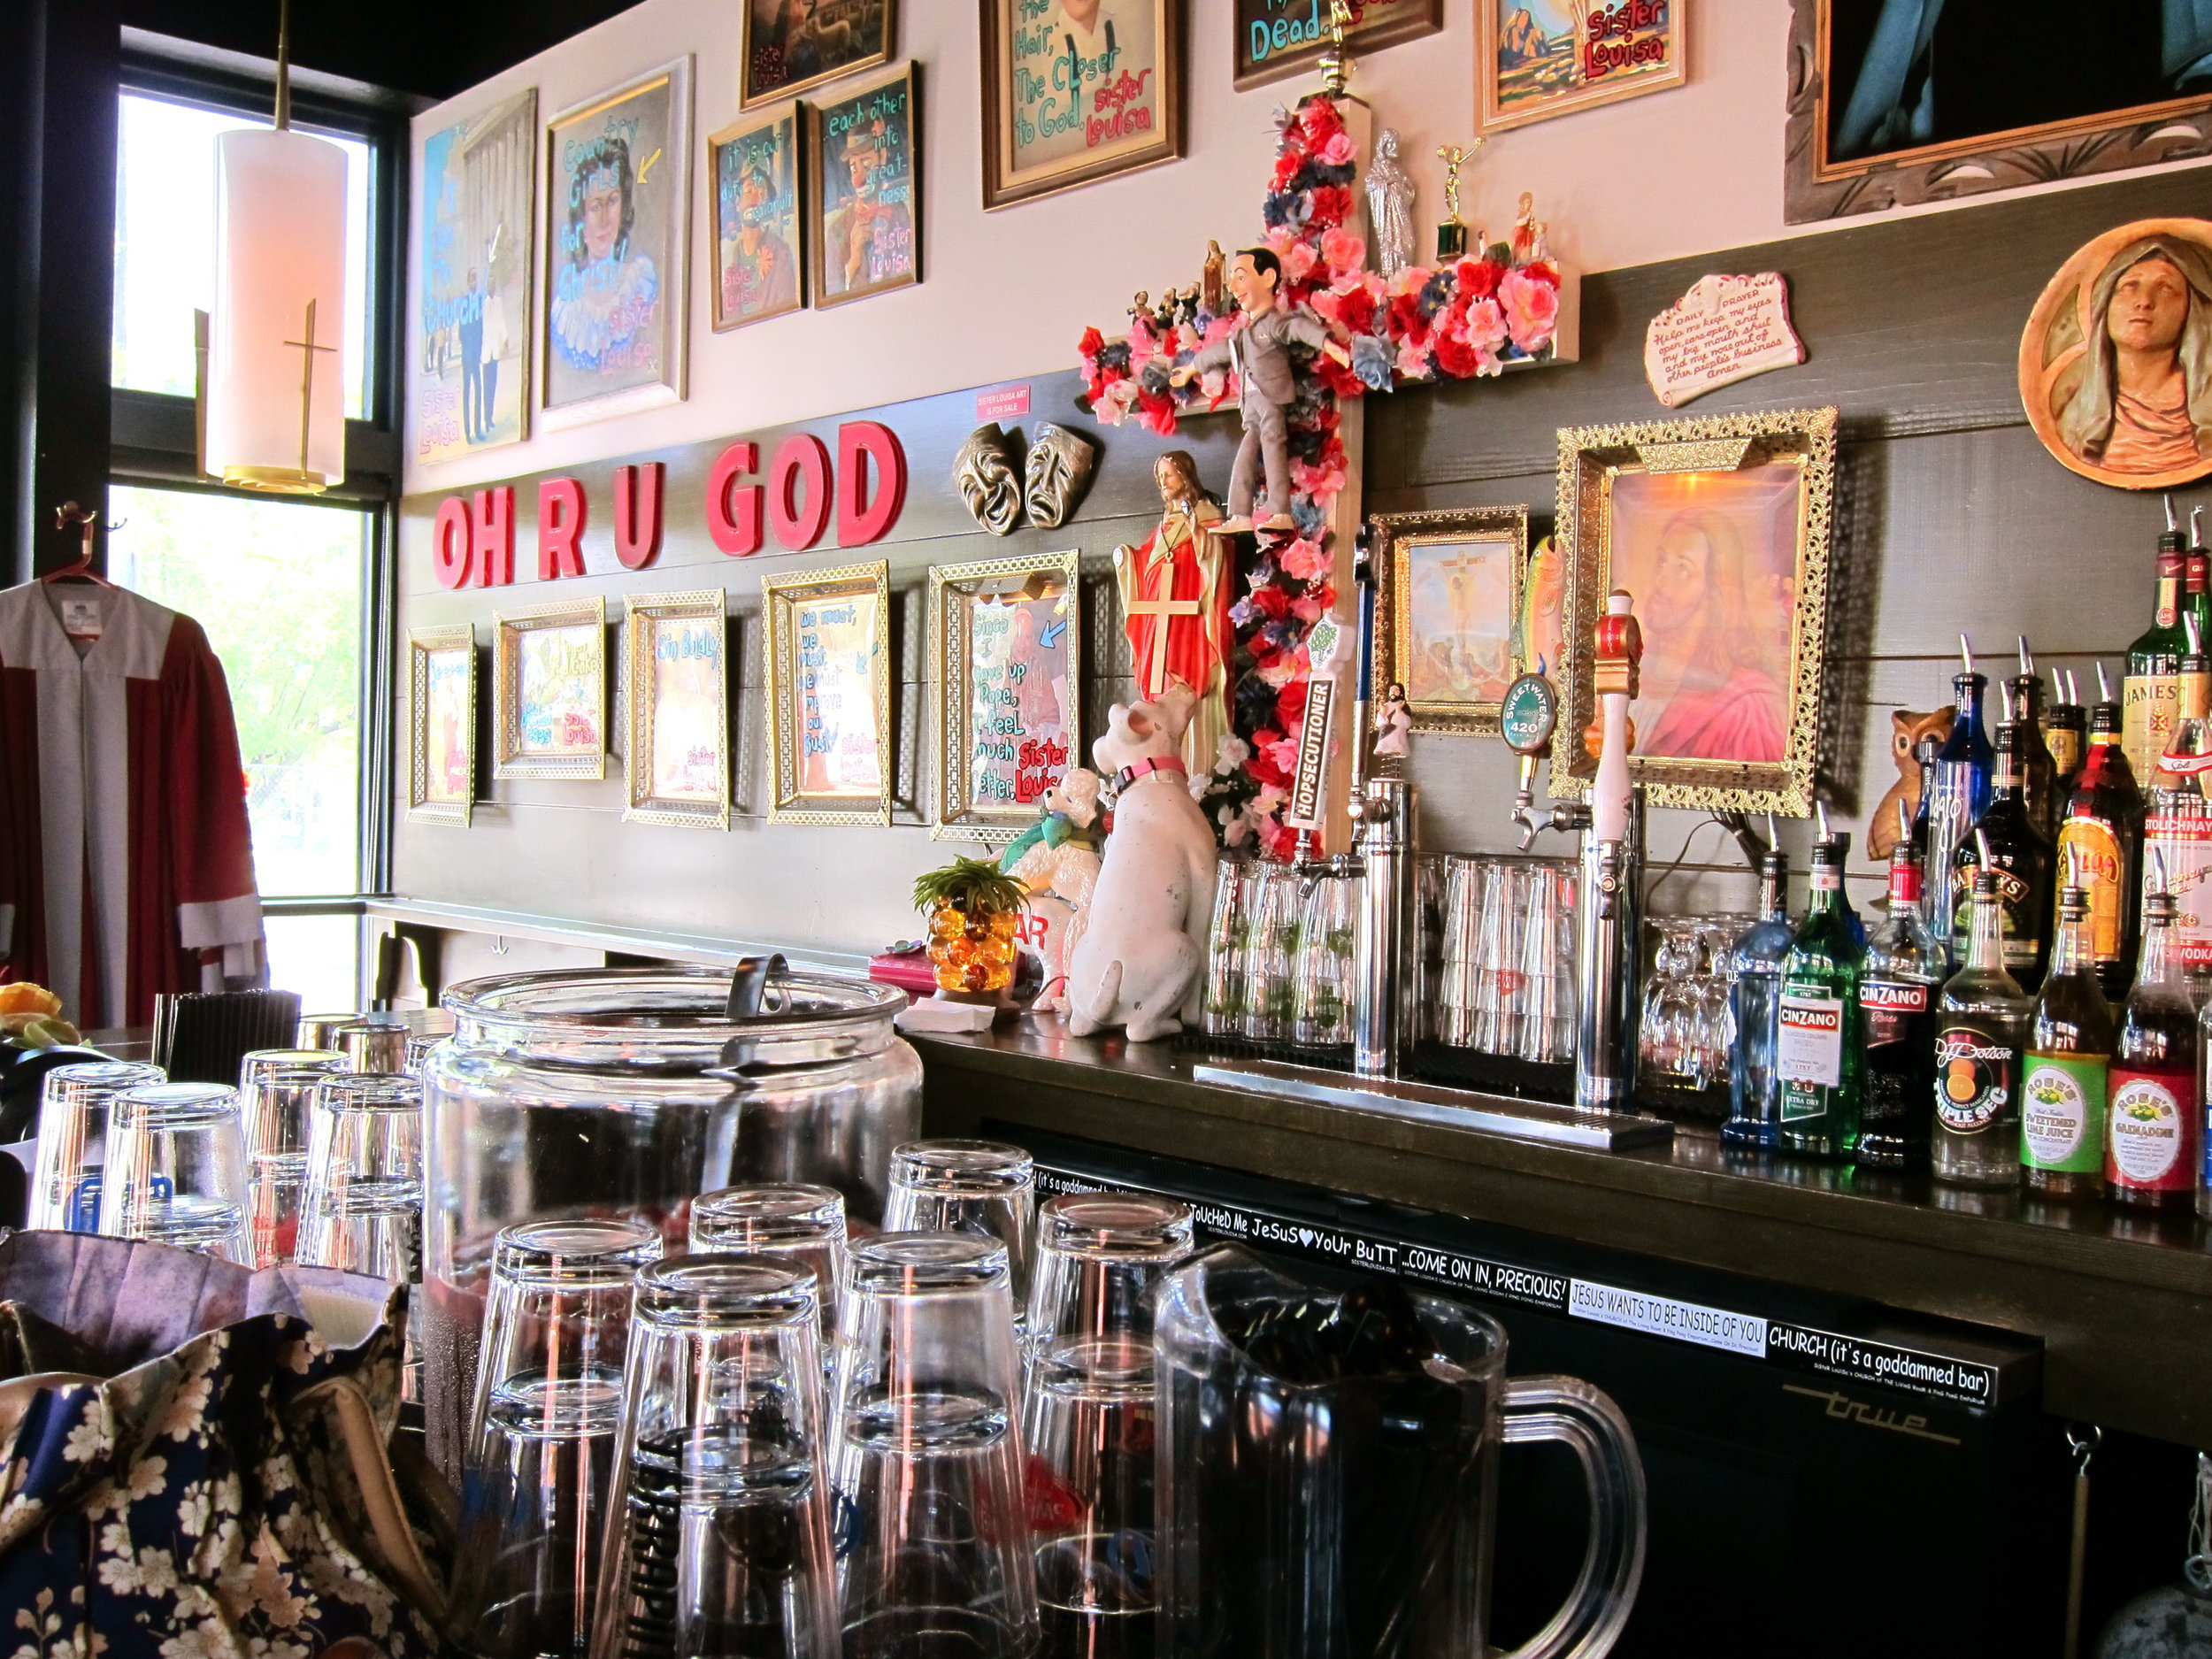 - Atlanta also loves its bars and its churches... but what about a bar called